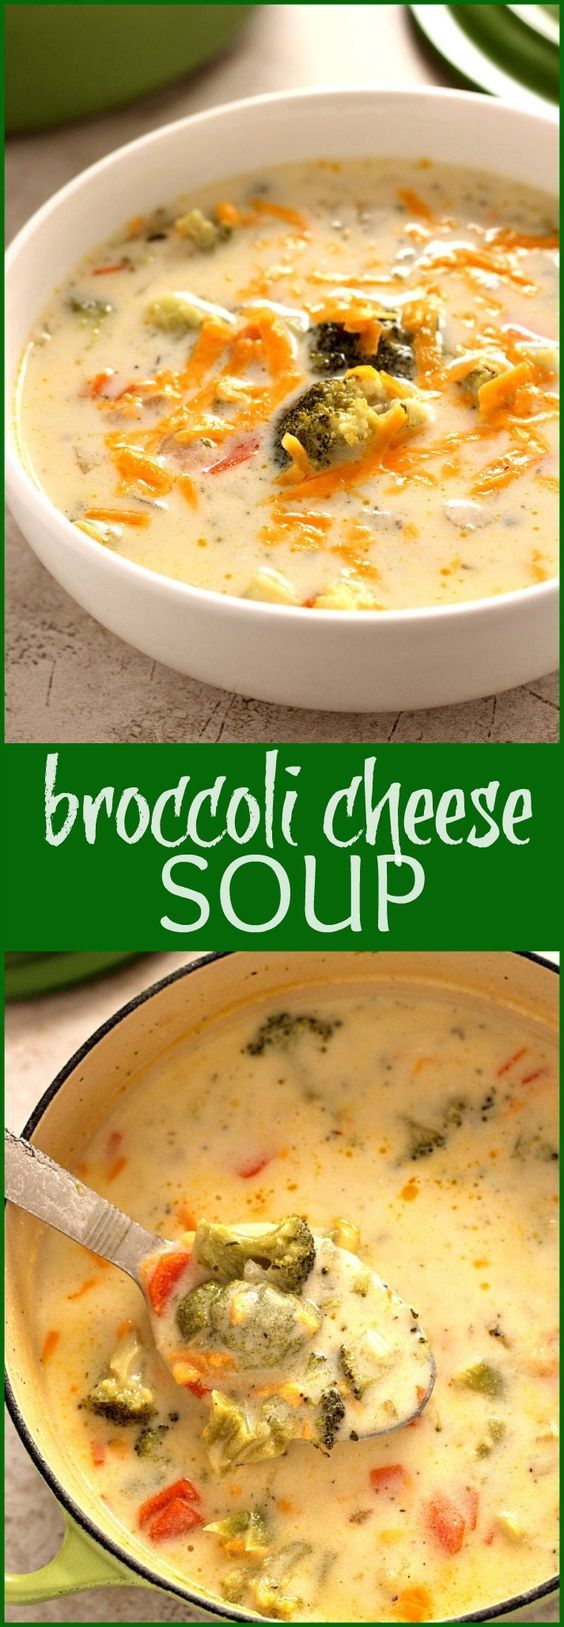 Broccoli Cheese Soup - make a Panera copycat in your own kitchen in under 30 minutes! Creamy and cheesy soup with broccoli florets.